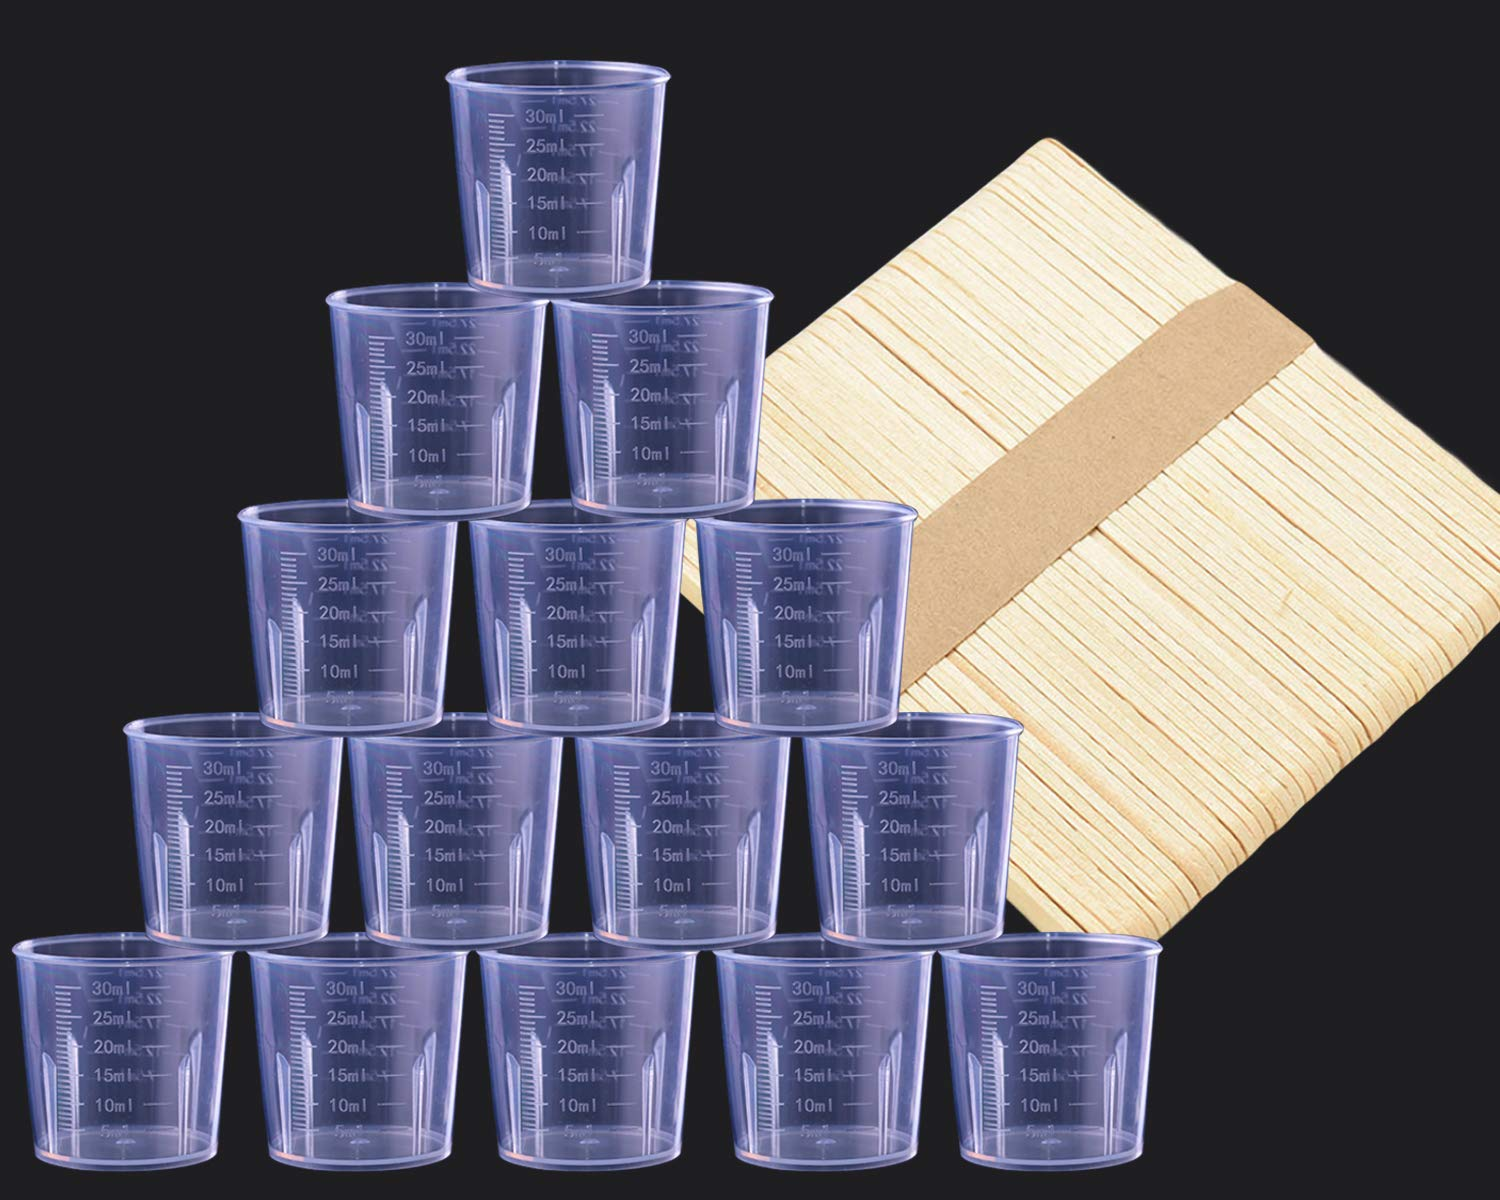 Chougui 50 Pack 30ml Clear Graduated Plastic Cups Measuring Cups with 50 Pack Wood Stir Sticks for Mixing Paint, Stain, Epoxy, Resin Chougui- resin mixing cups